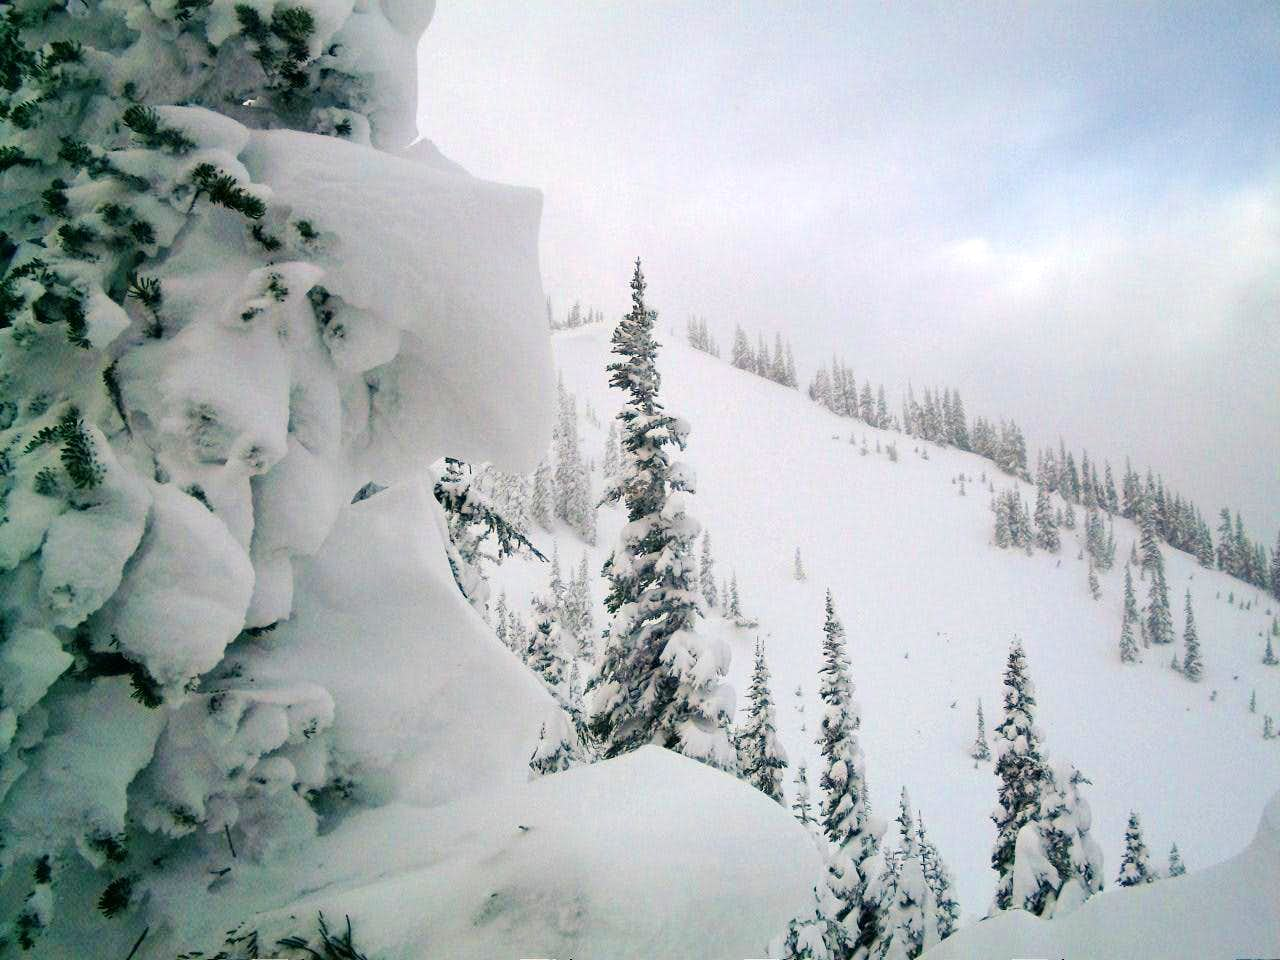 Blizzards Blasting on Bullion Peak